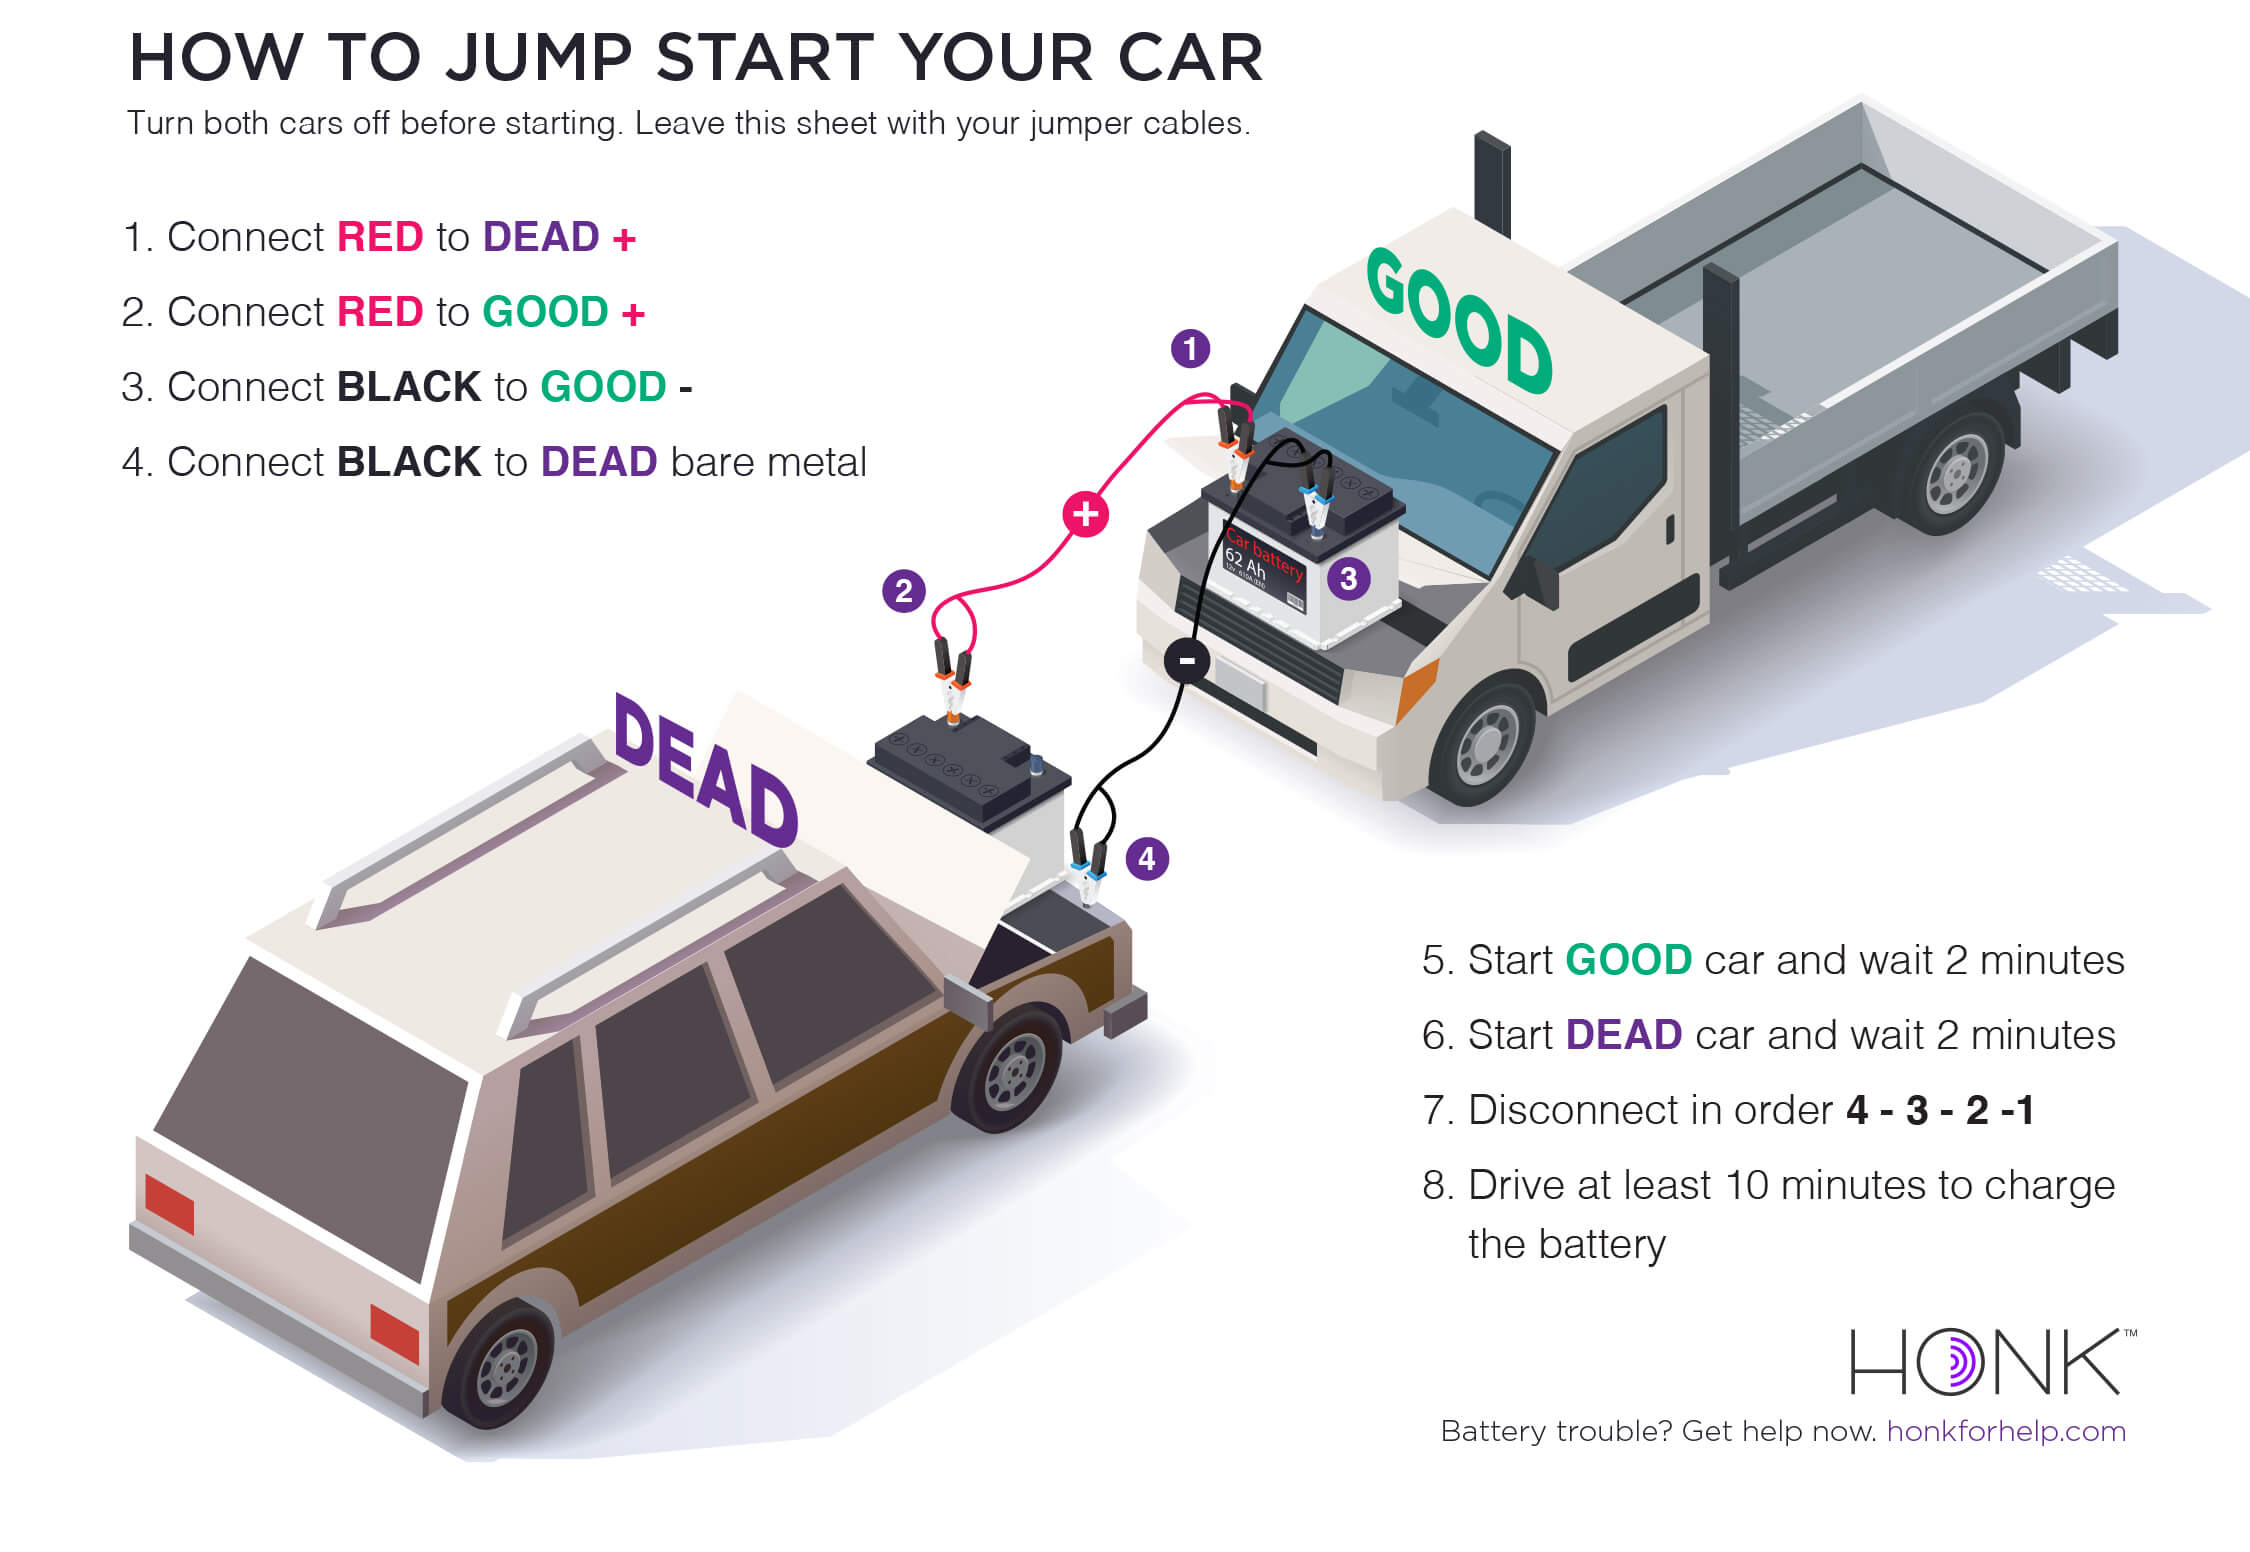 How To Jump Start A Car Battery Safely